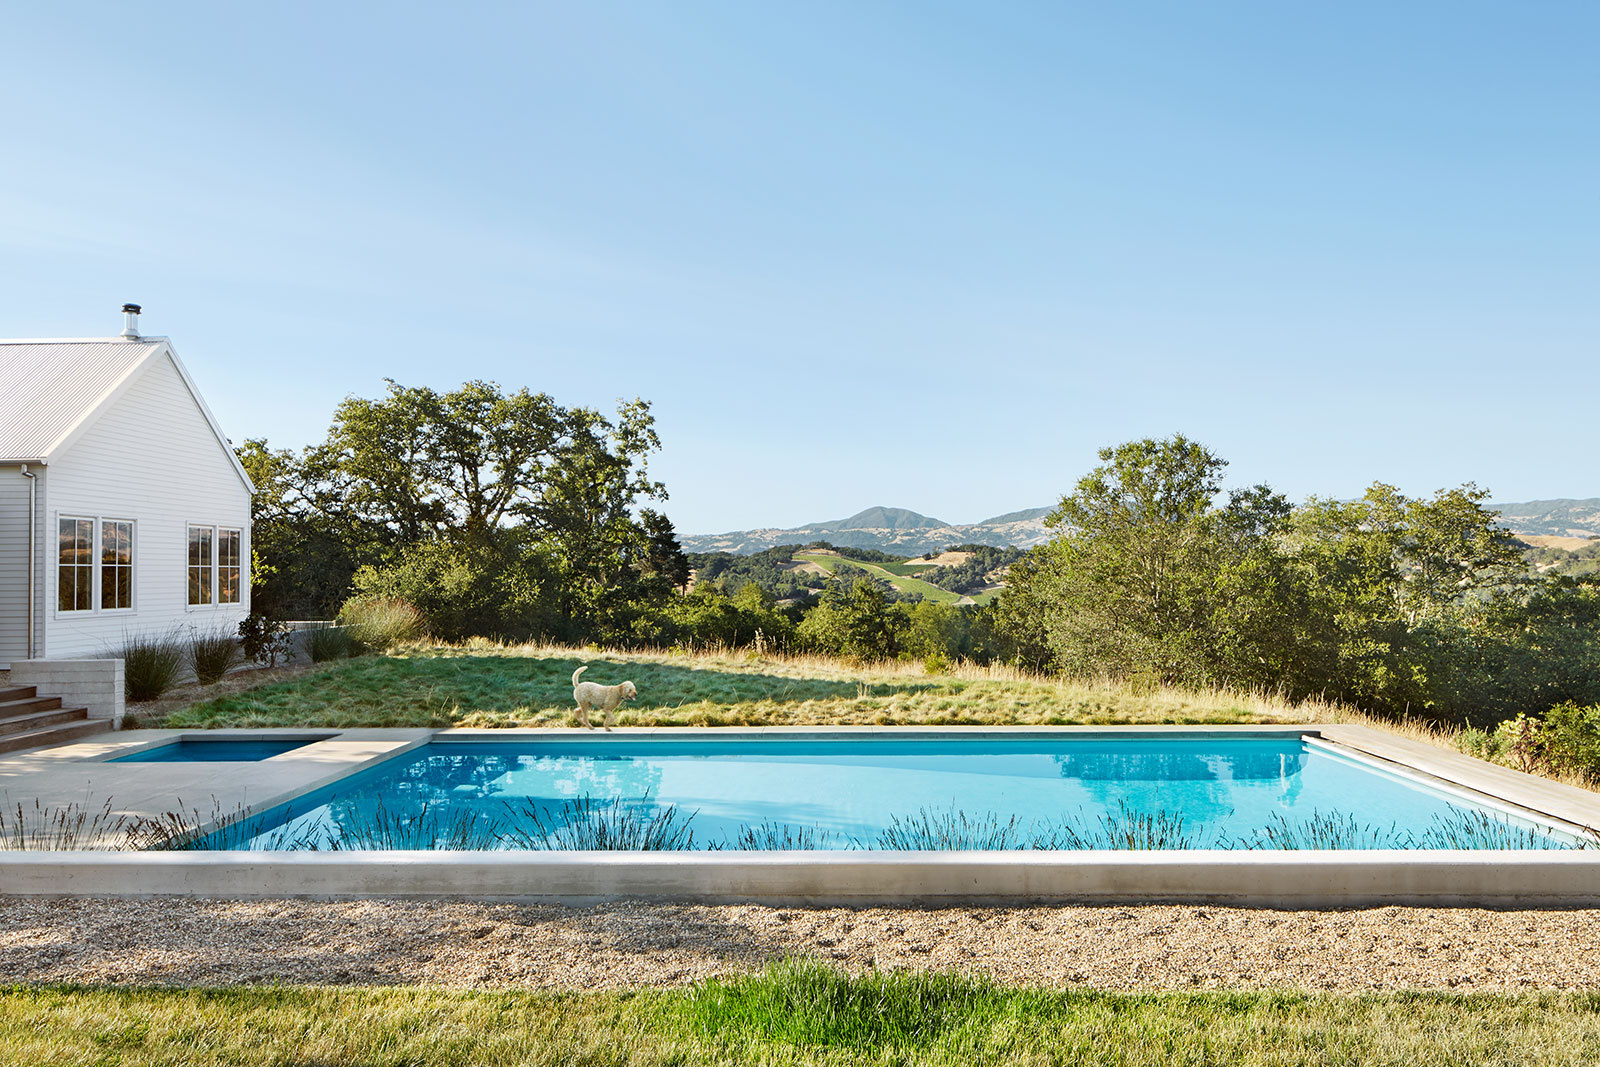 Swimming pool + House  | Dovis Bird Agency Photography